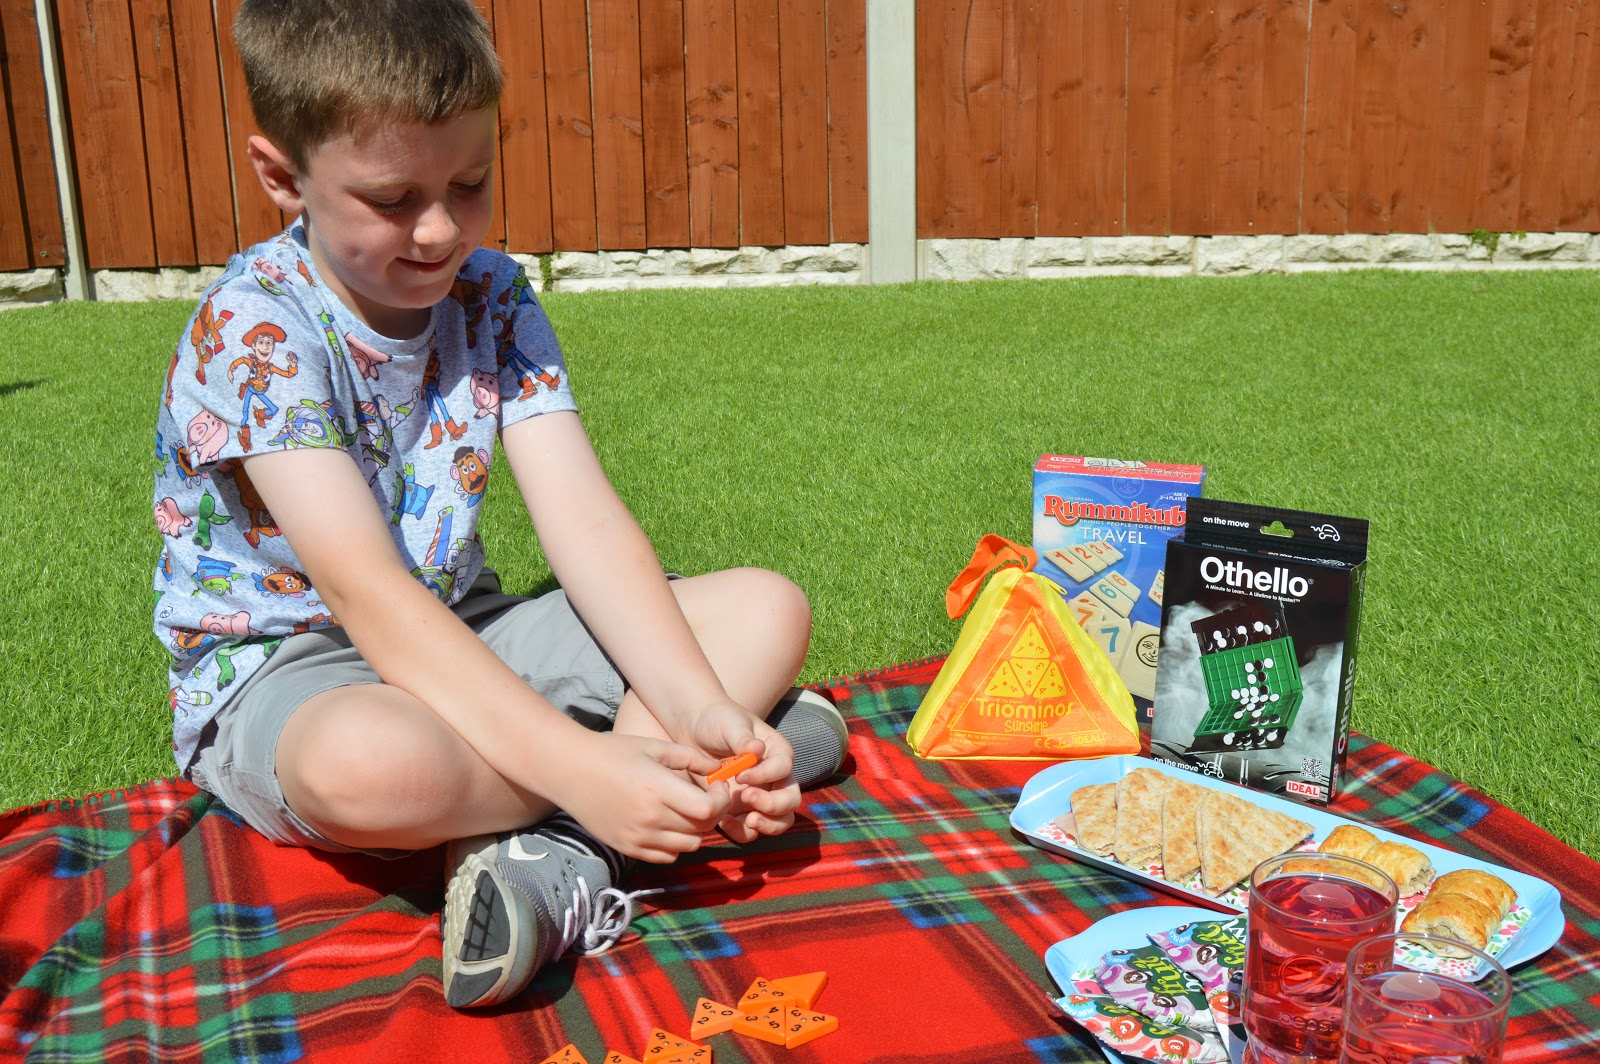 Boy playing games while having a picnic